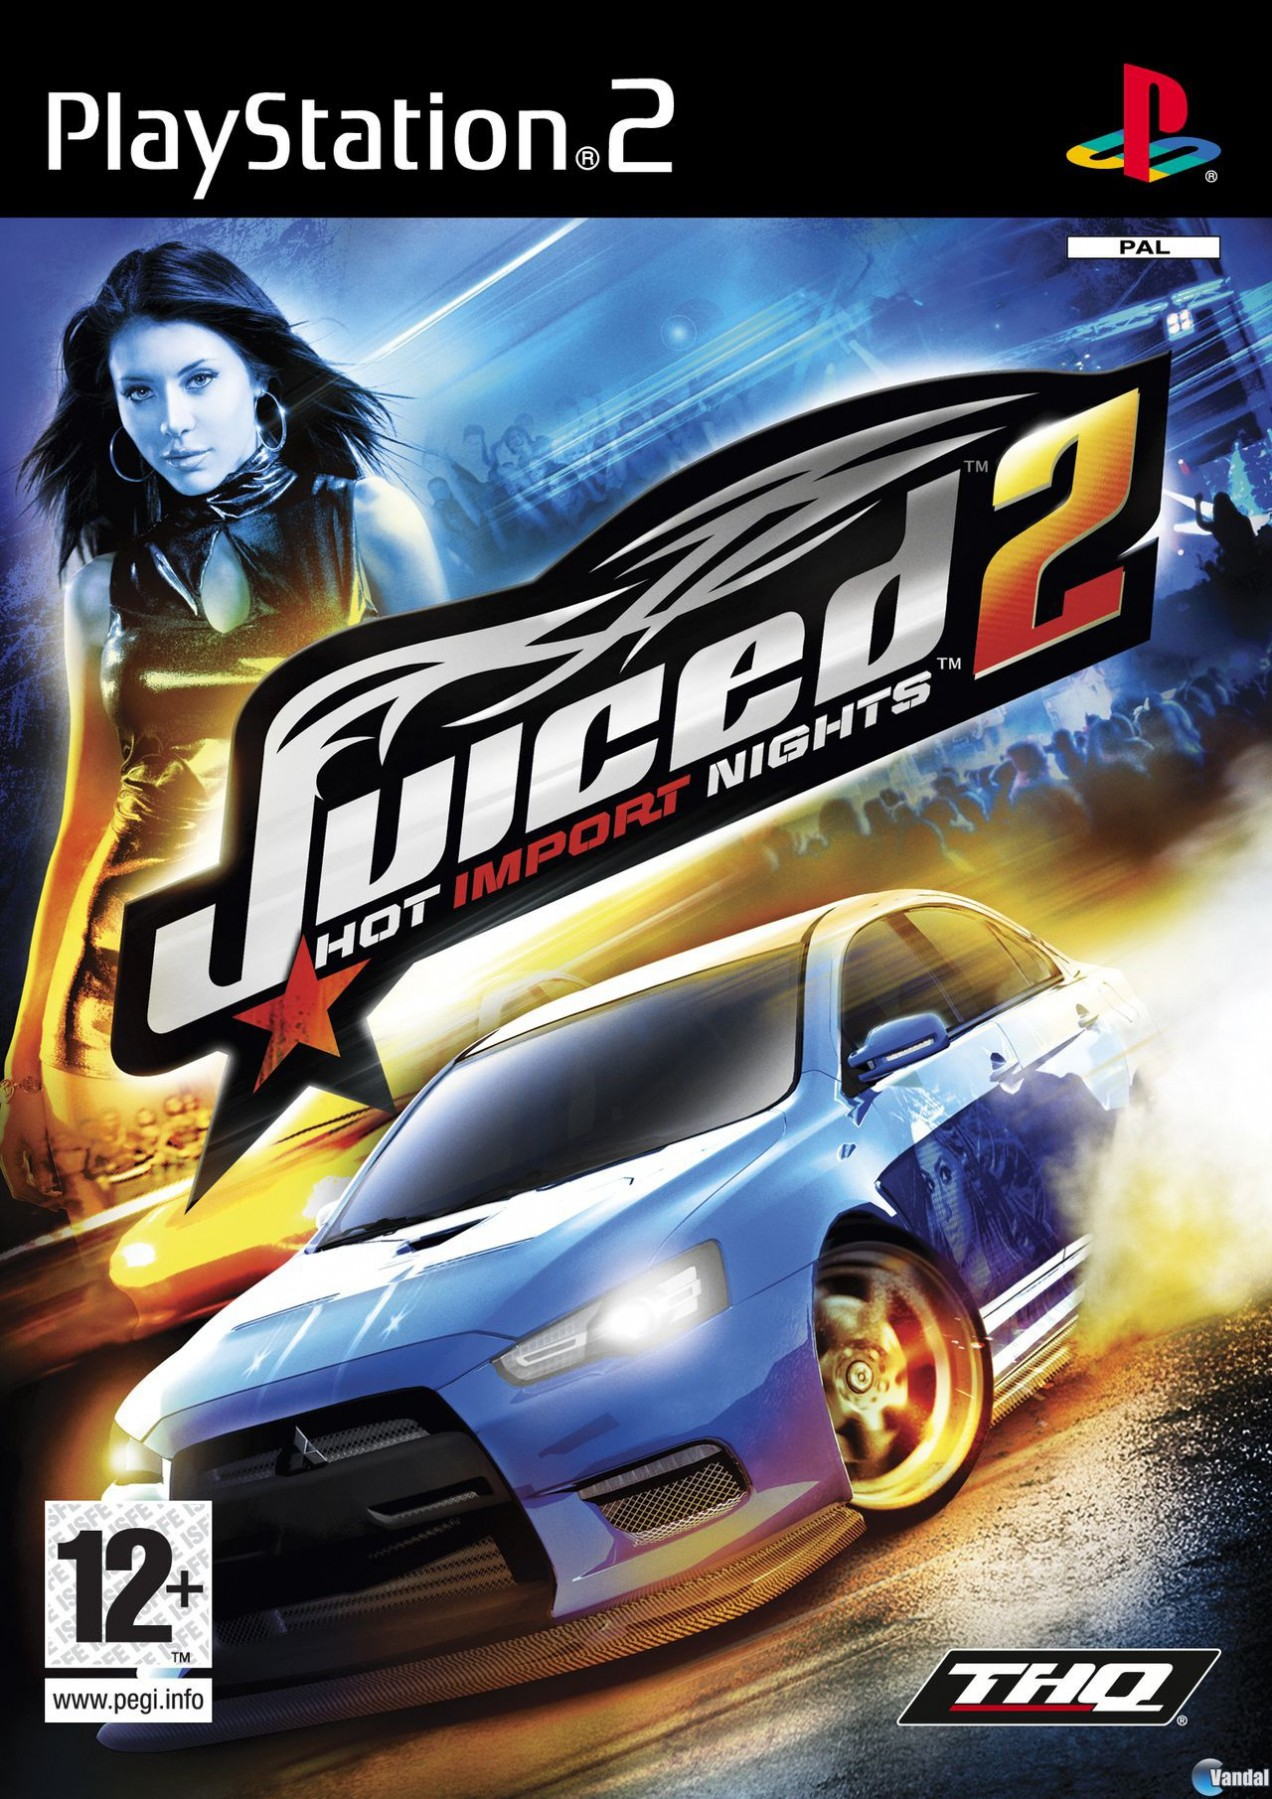 Juiced 2 Hot Import Nights б/в PS2